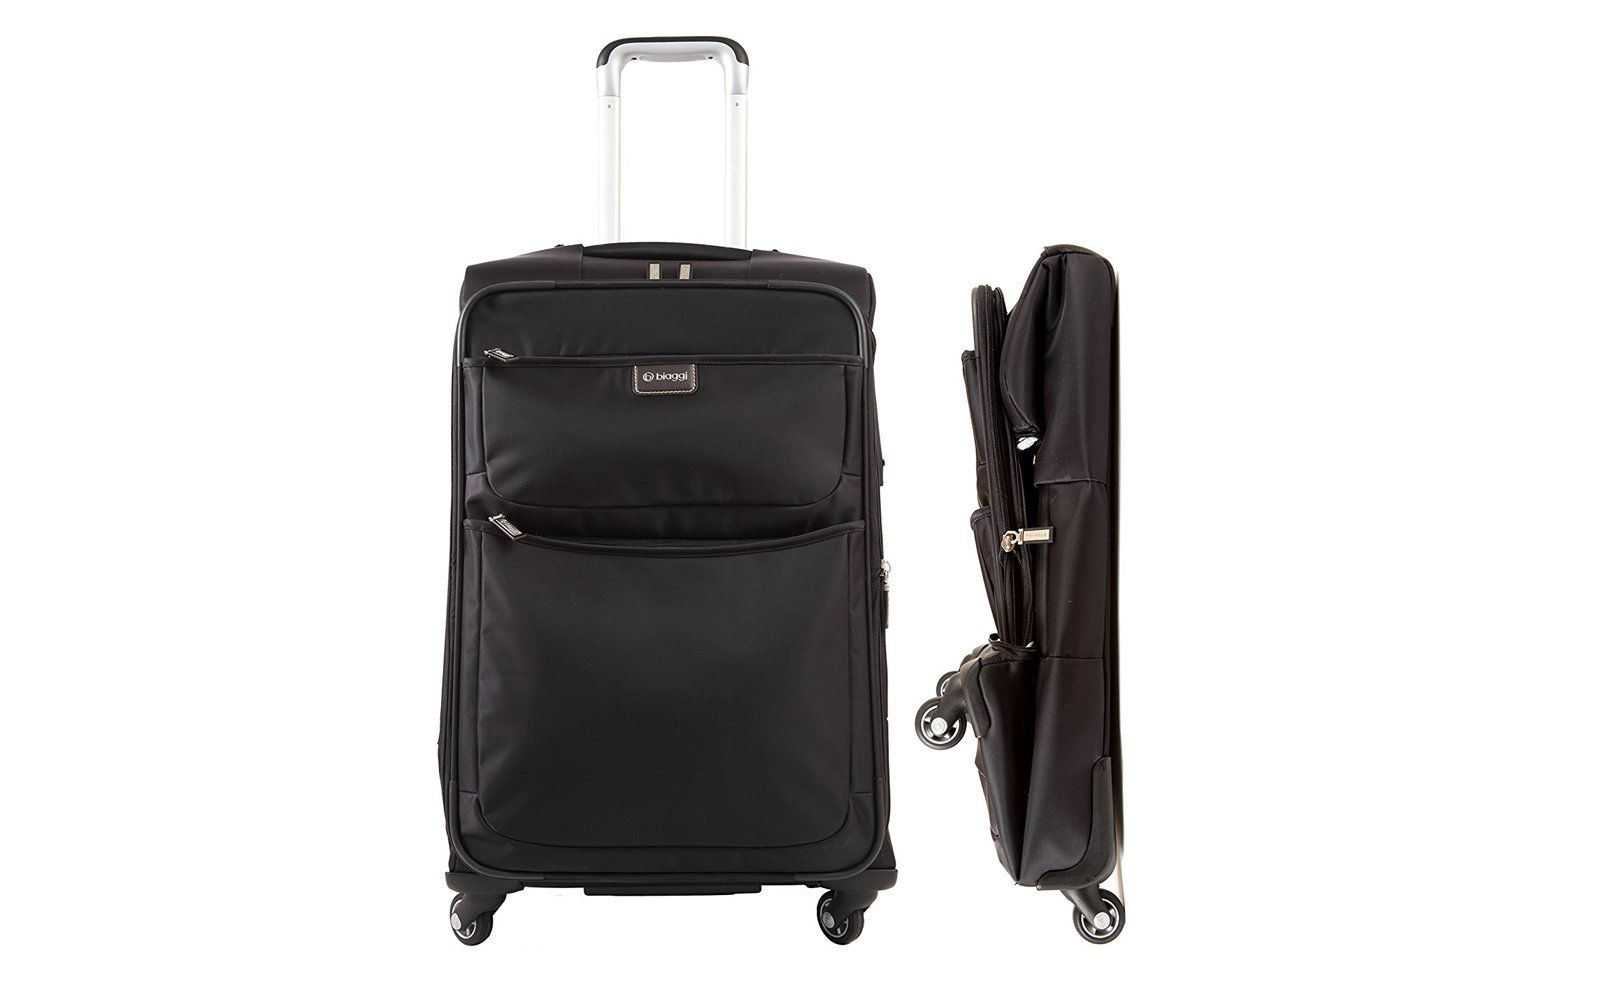 94a67ab86b34 The Best Carry-on Luggage, According to Travel Editors | Vacay ...